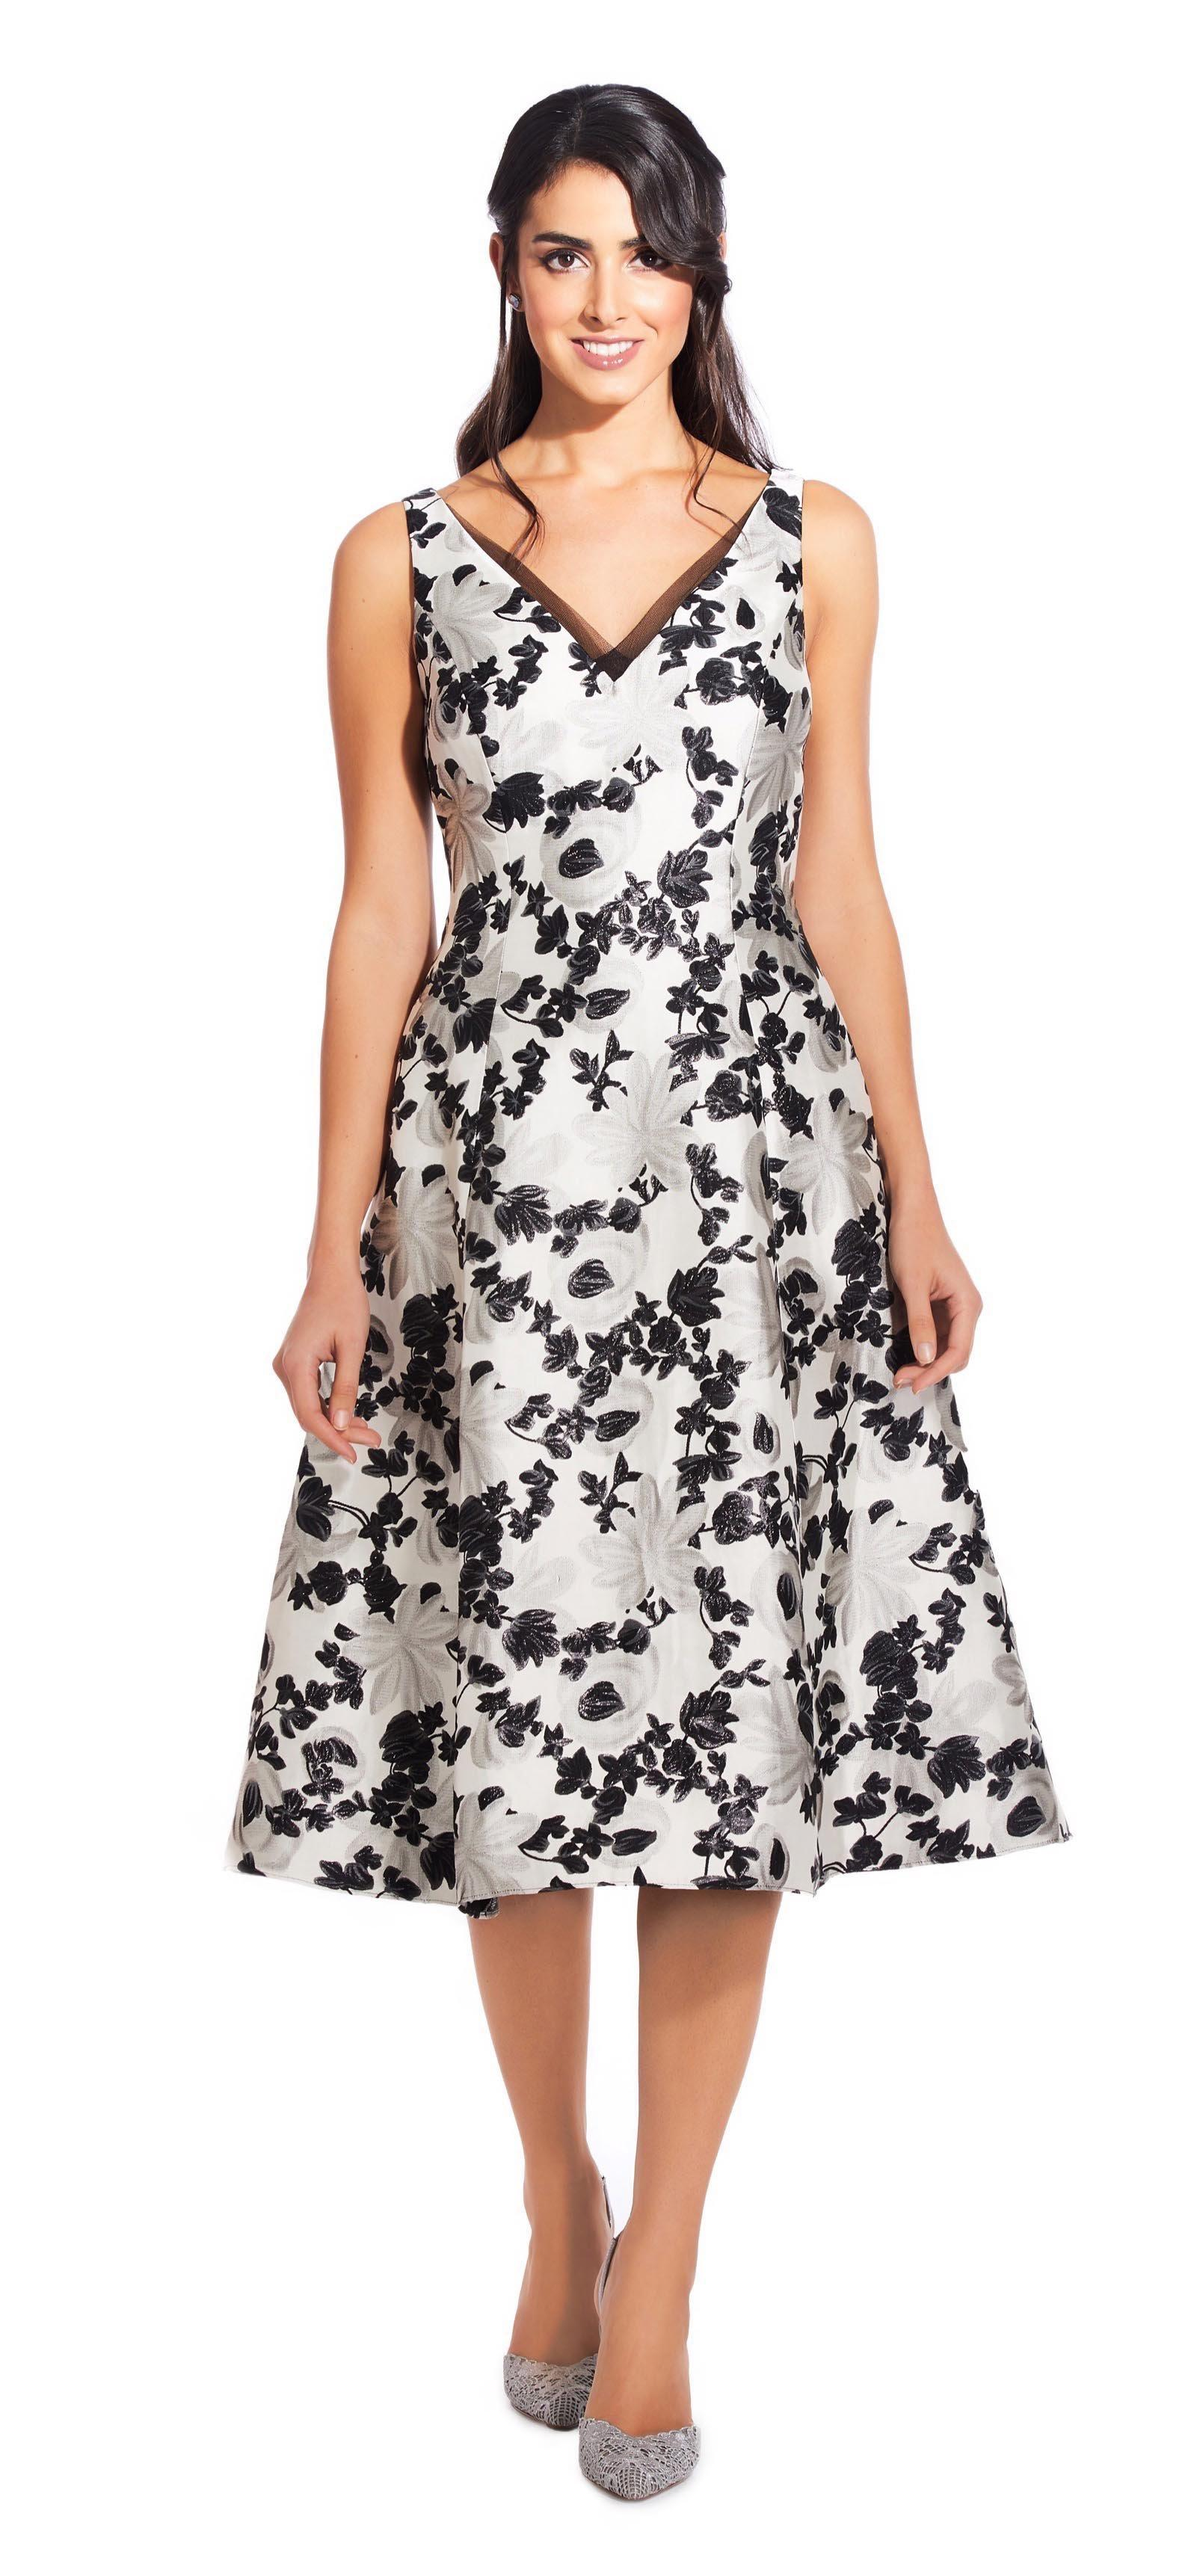 cb85834c Adrianna Papell. Women's Black Ap1e204997 Floral Metallic V-neck Dress.  $180 From Couture Candy